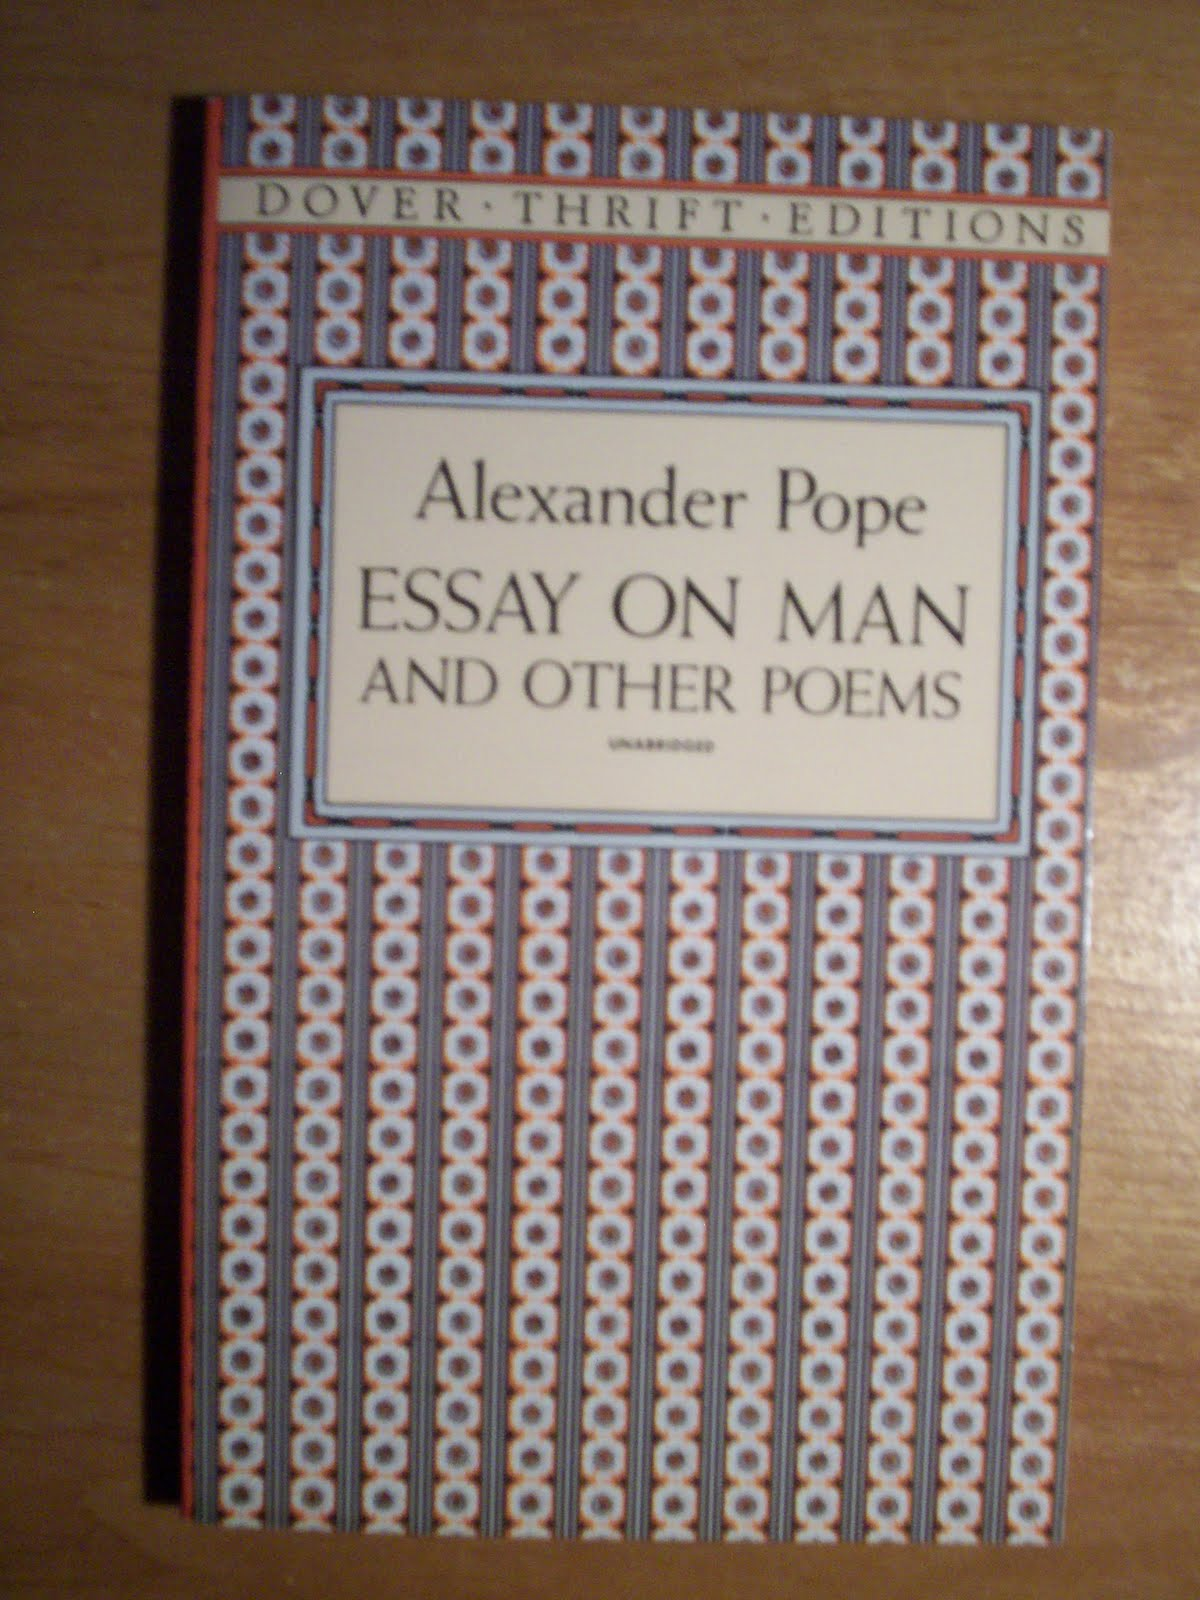 sparknotes essays an essay on man alexander pope sparknotes the  an essay on man alexander pope sparknotes an essay on man alexander pope sparknotes